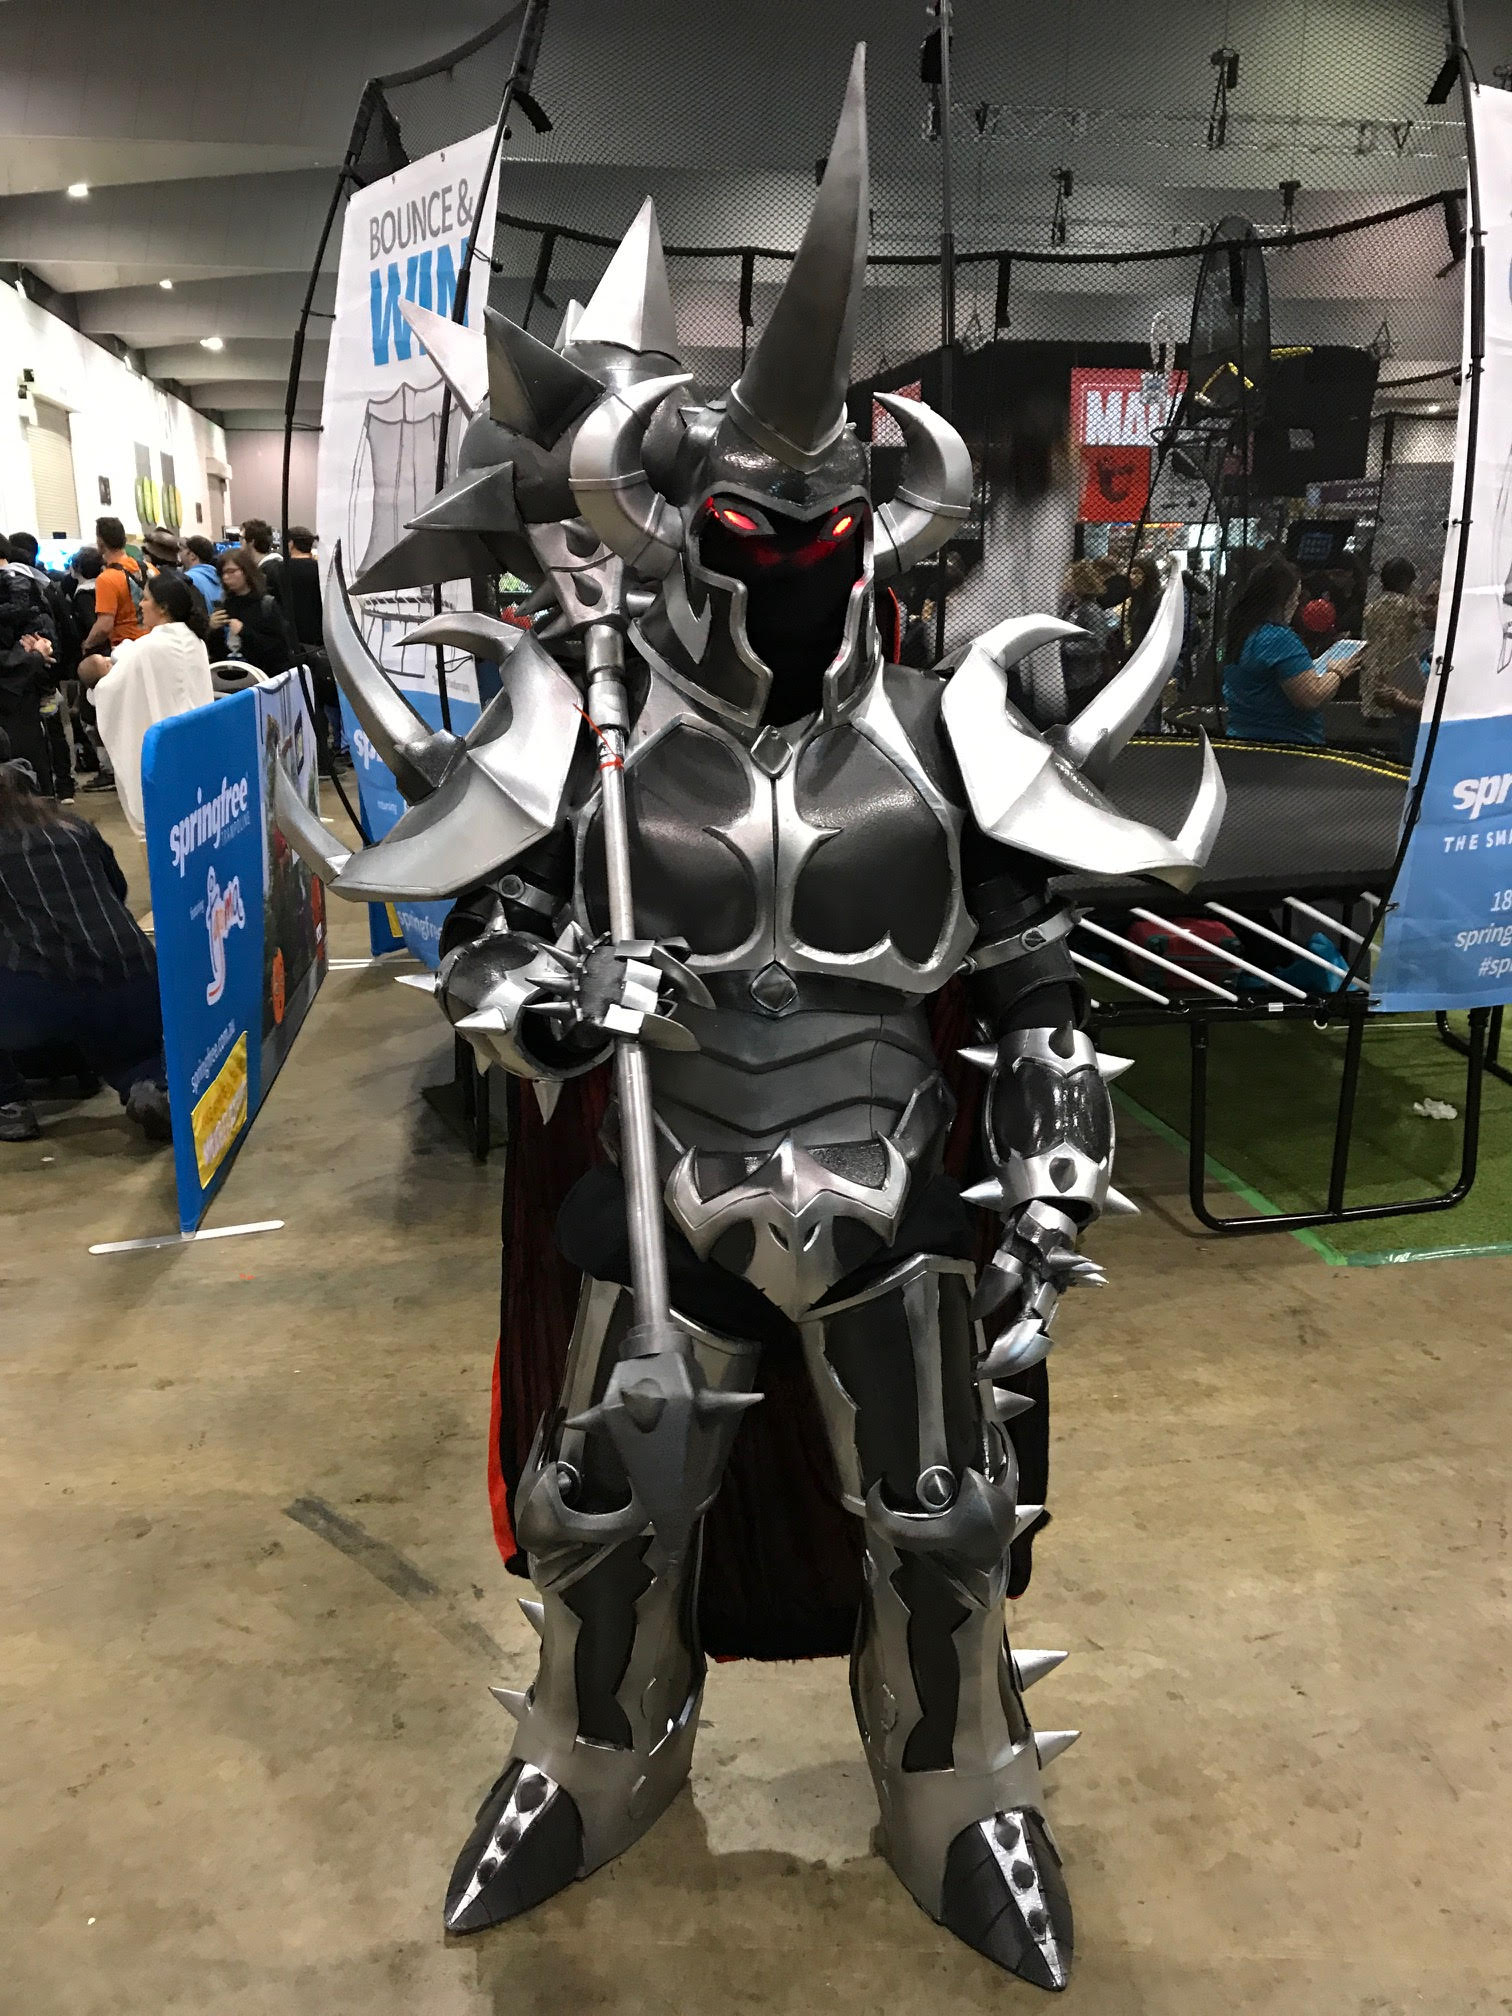 This Cosplayer stole the show!